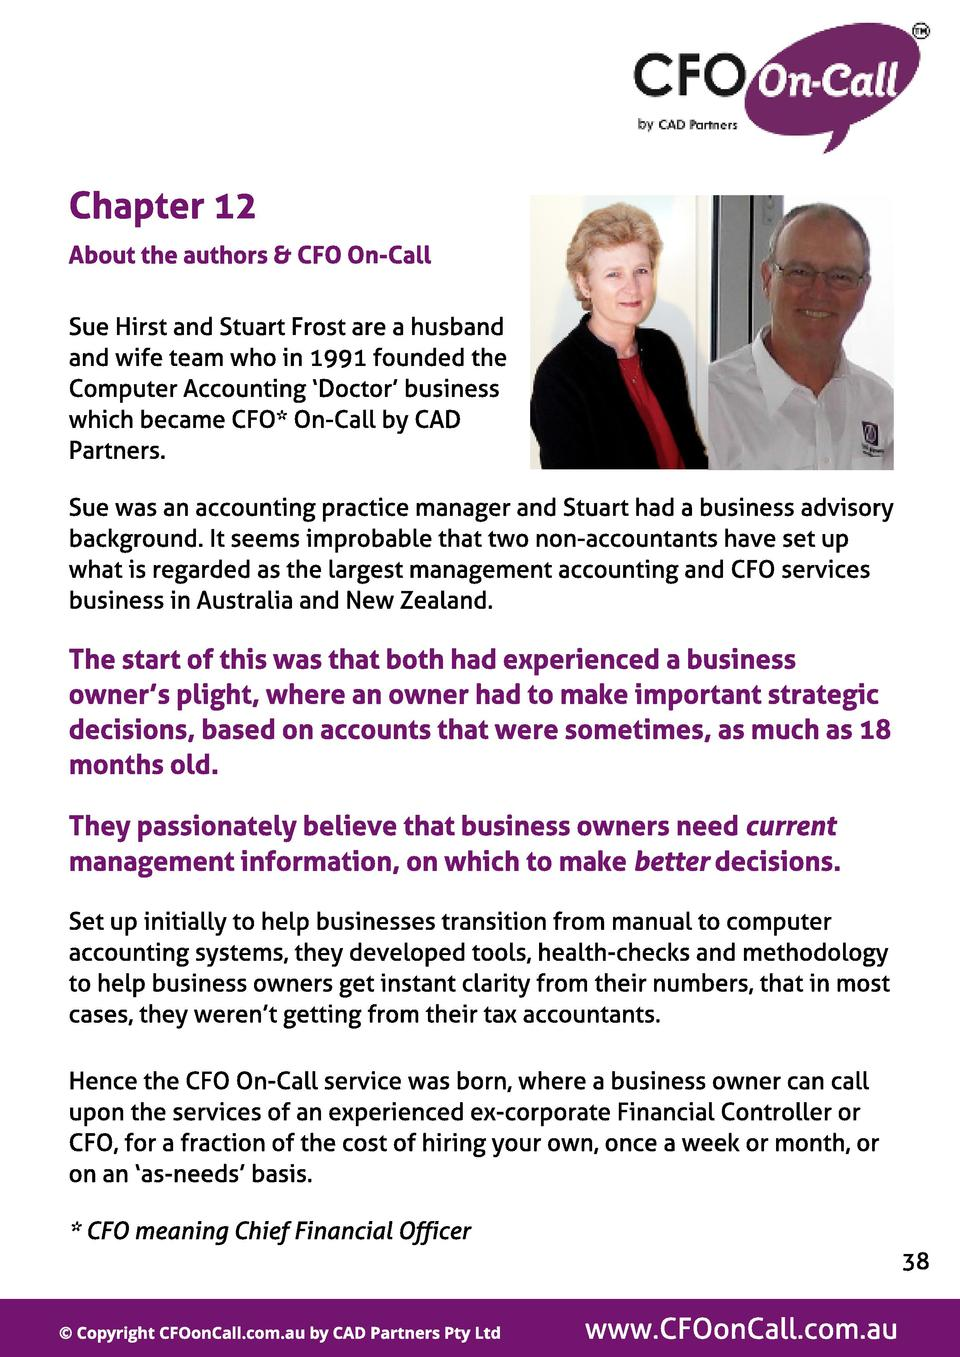 Chapt er 12 About t he aut hors   CFO On-Cal l Sue Hirst and Stuart Frost are a husband and wife team who in 1991 founded ...